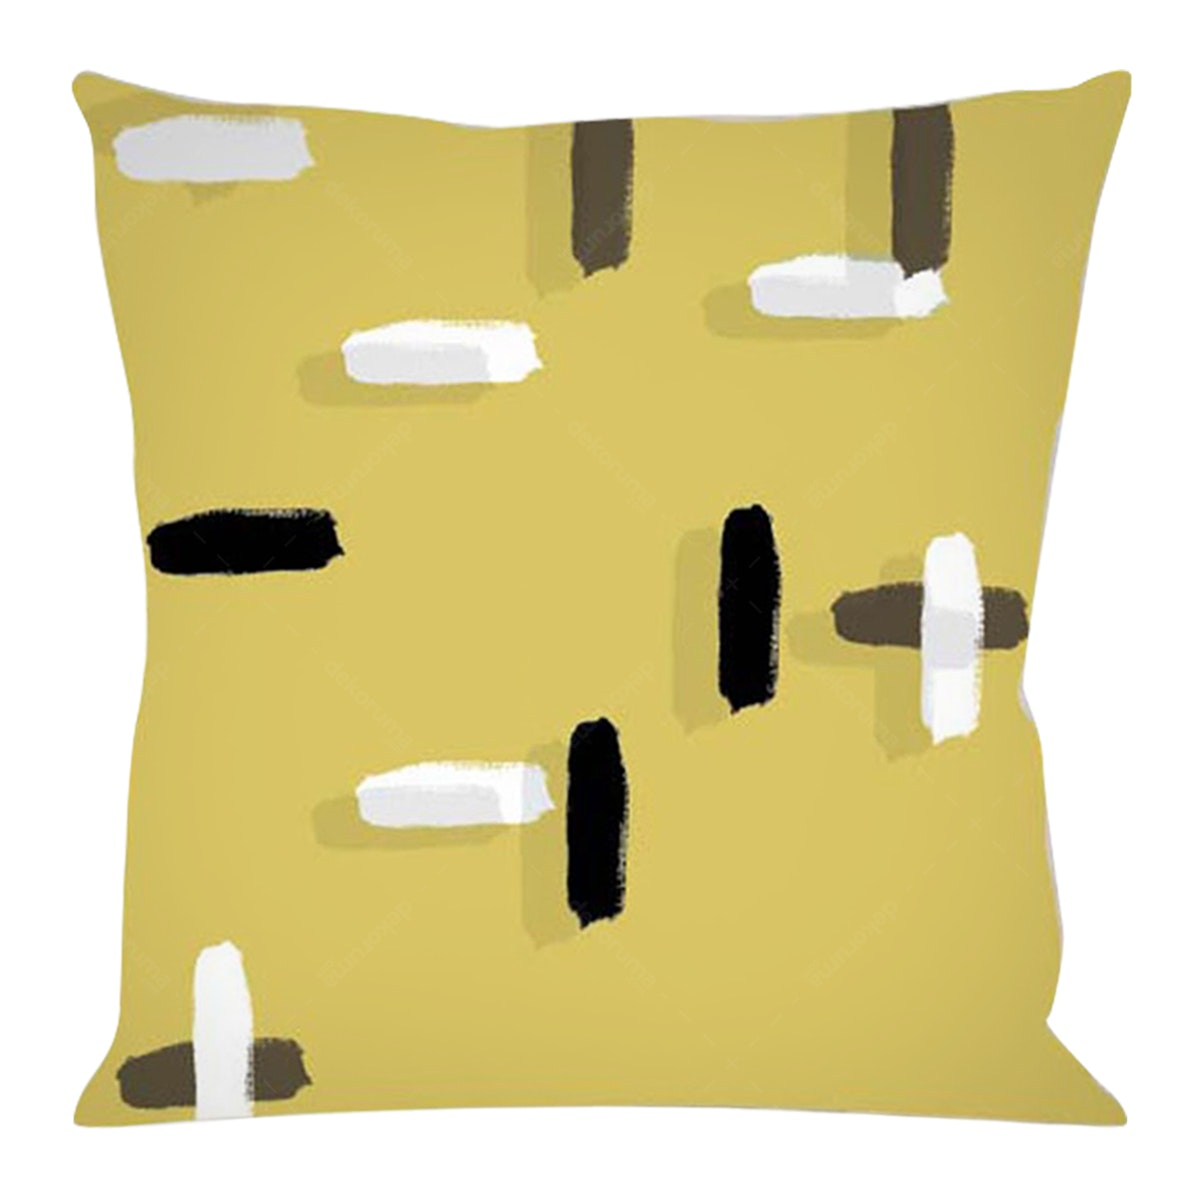 On&On Gold Paint #4 Cushion 40x40cm